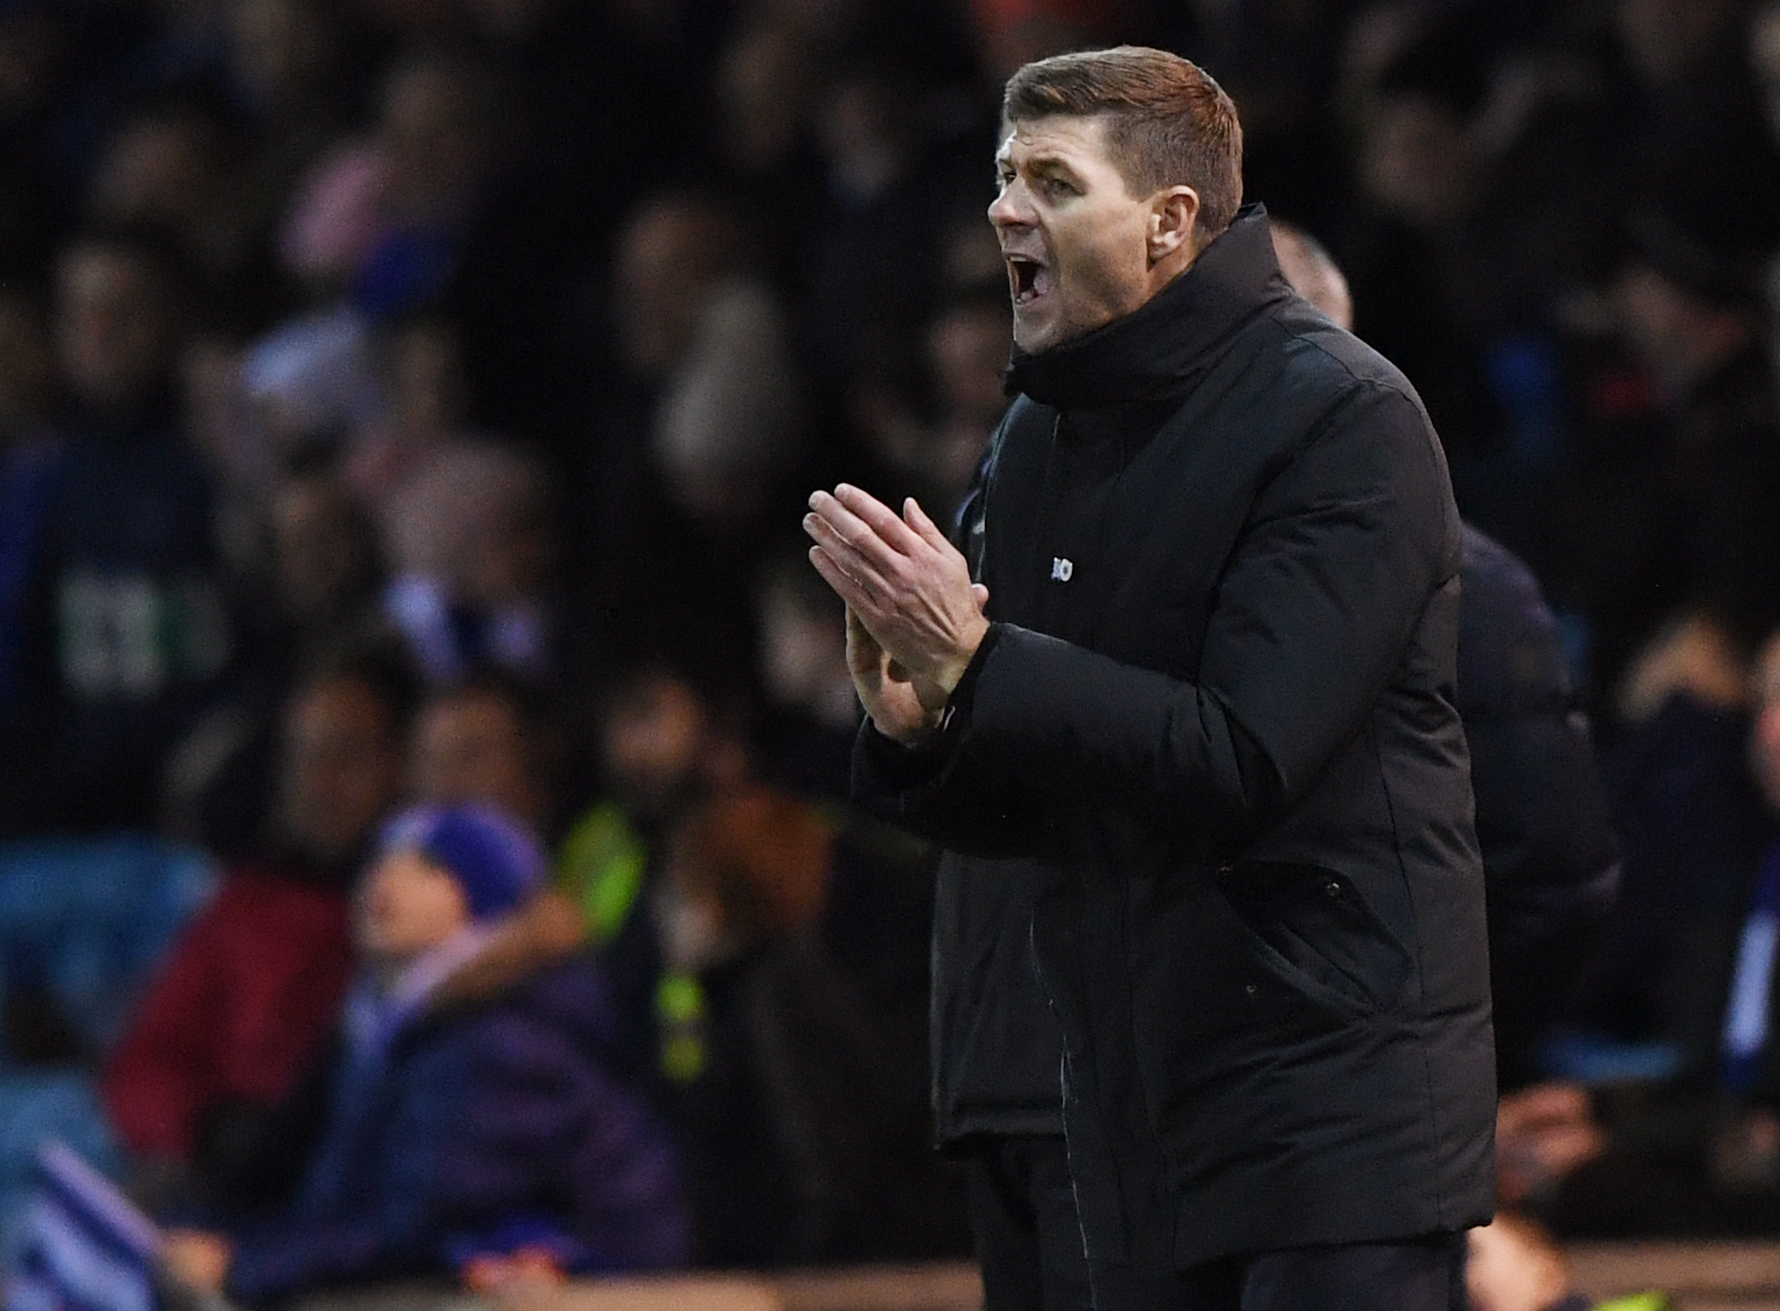 Kilmarnock 0-0 Rangers: James Tavernier misses a penalty as Scottish Cup clash ends in a stalemate